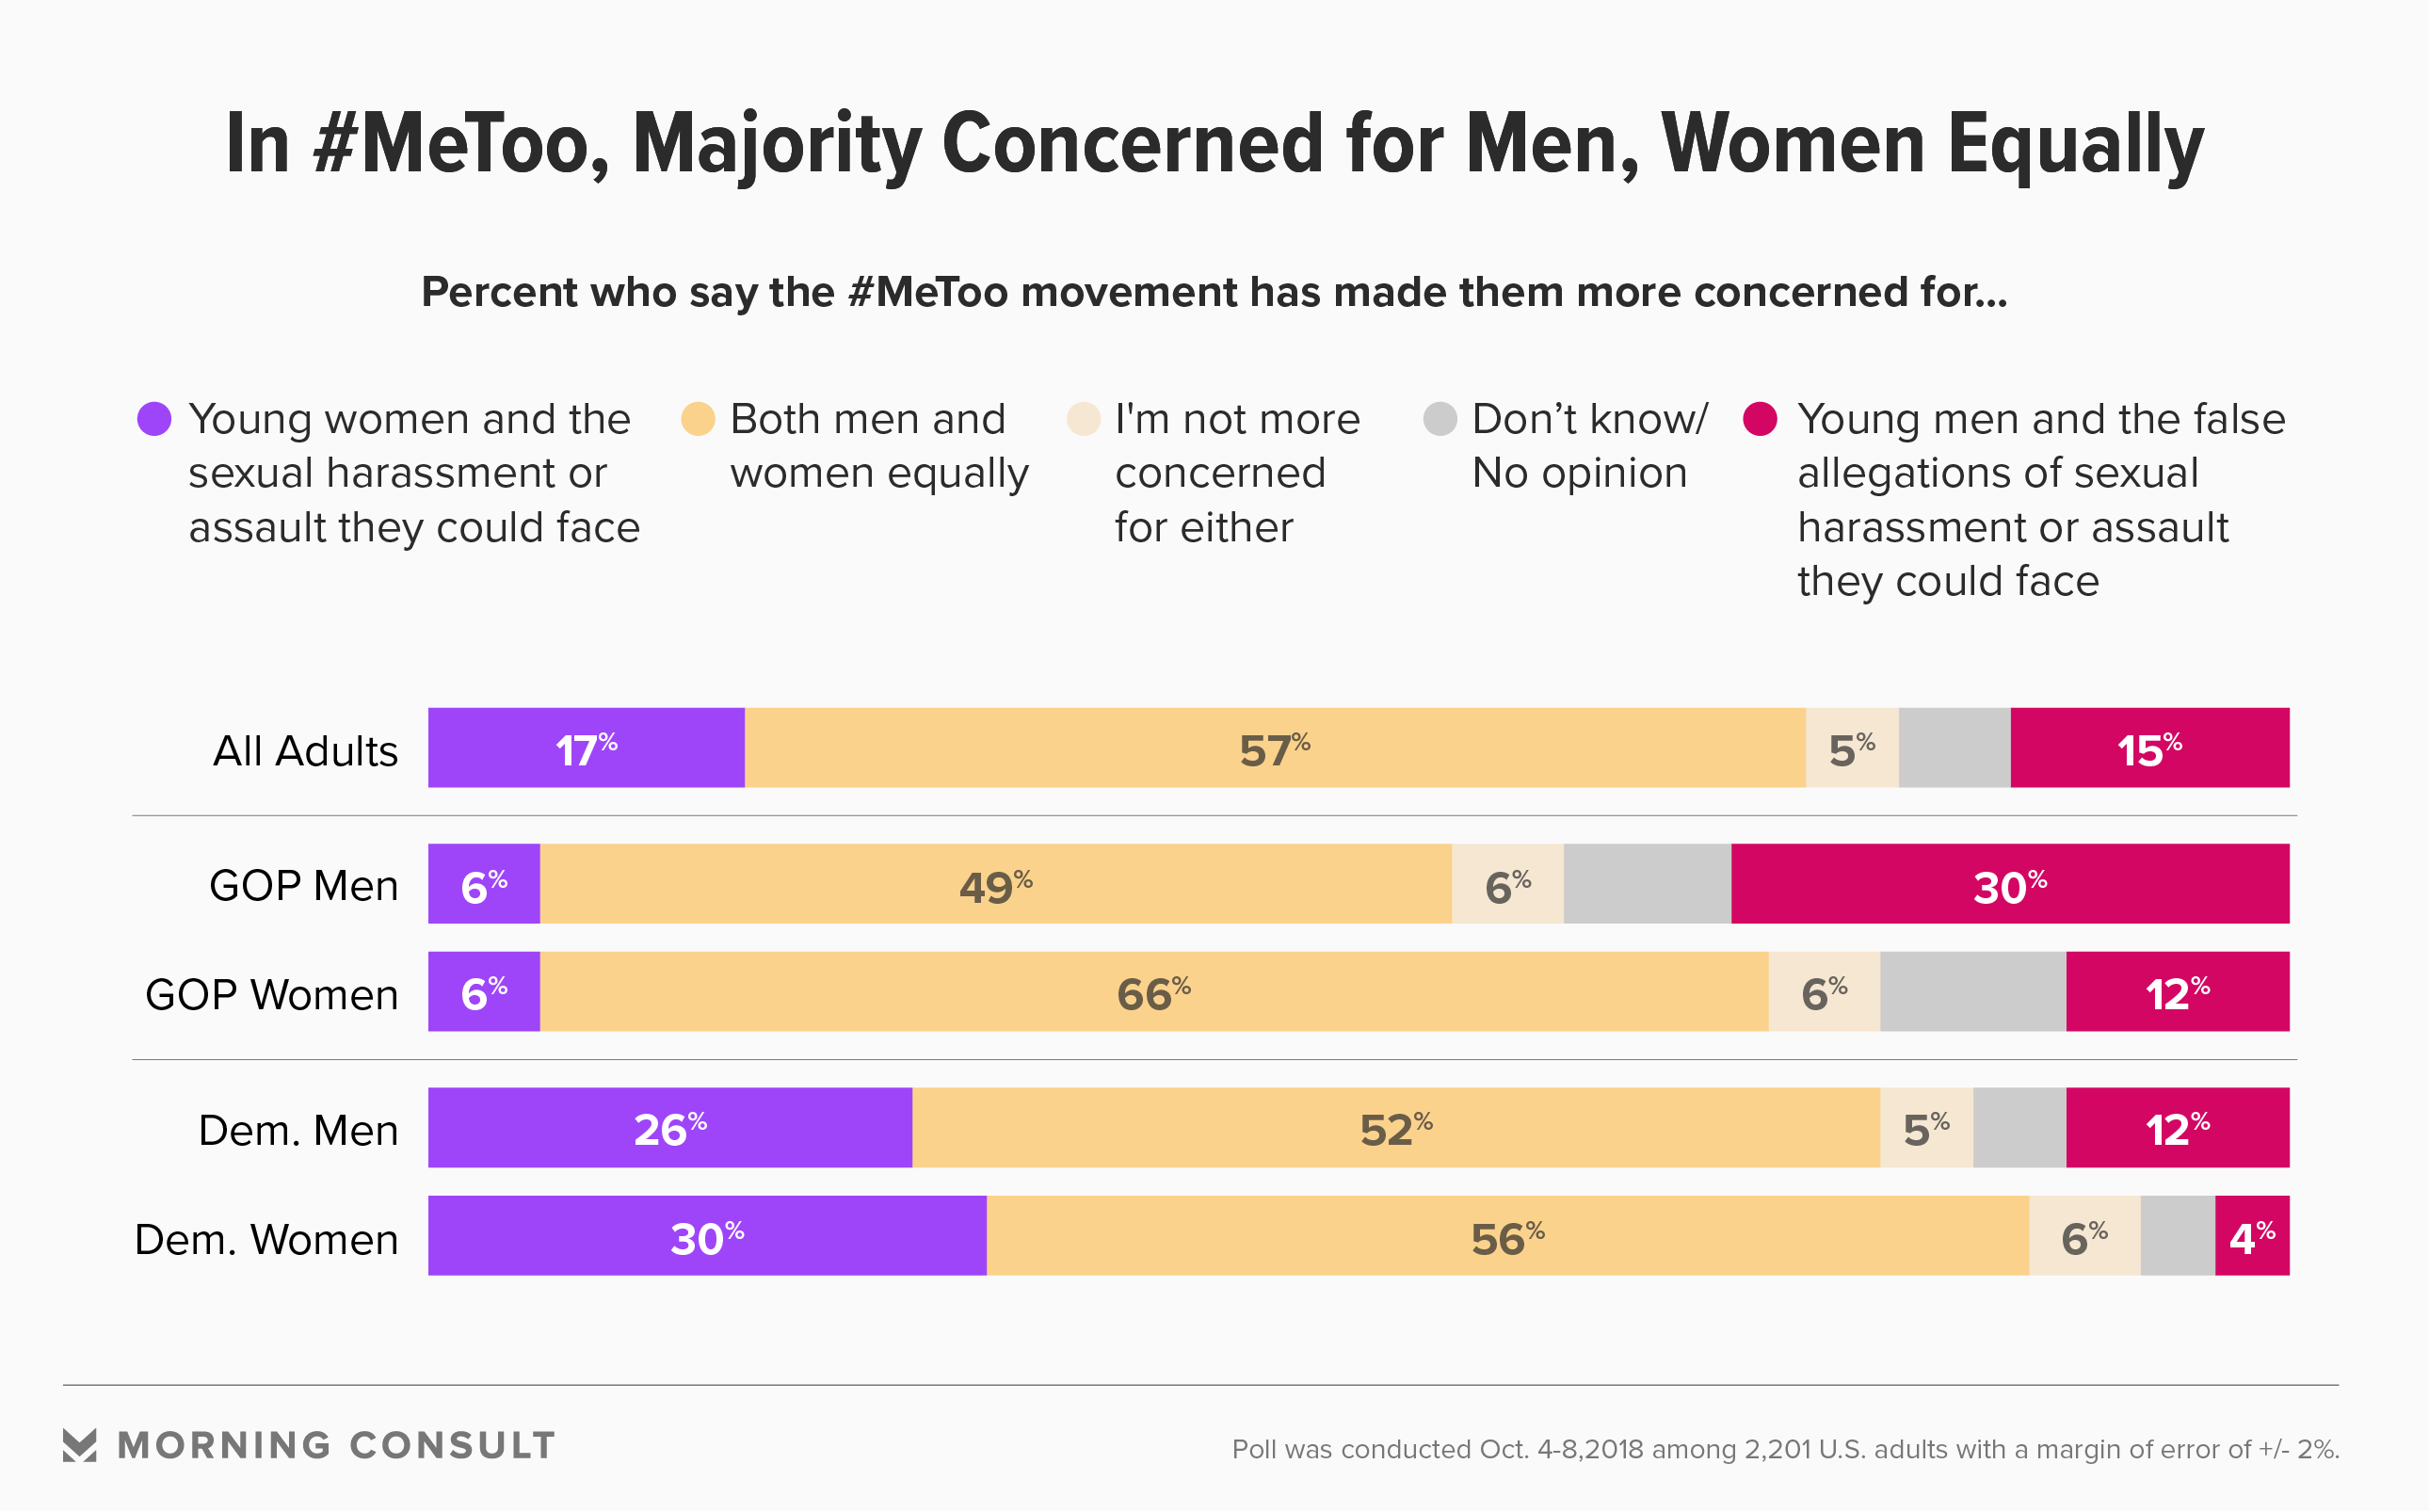 A Year Into #MeToo, Public Worried About False Allegations